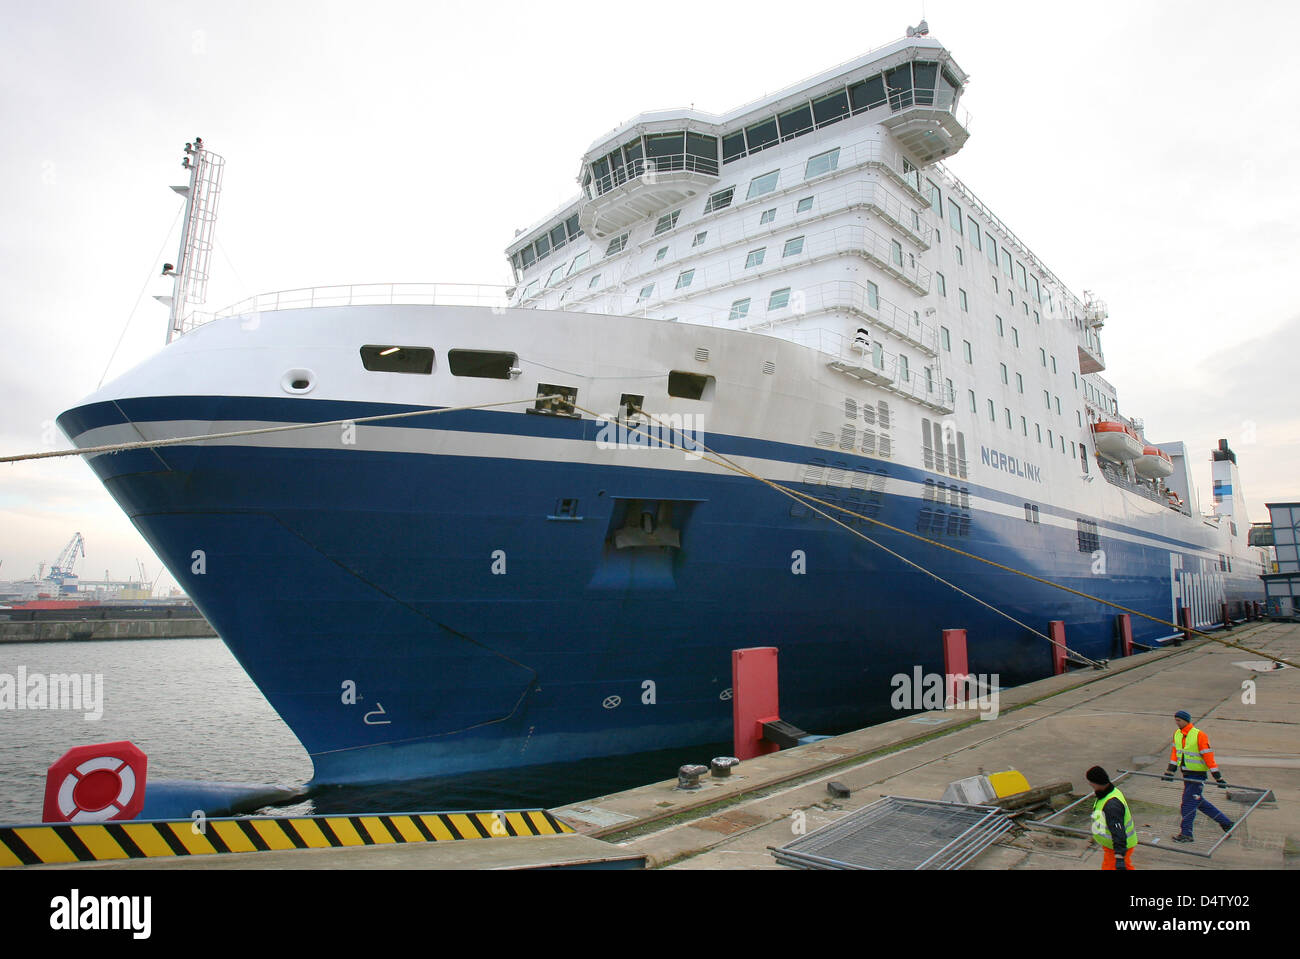 Ferry 'Nordlink' by Finnish shipowning company Finnlines is dispatched in the harbour of Rostock, Germany, - Stock Image